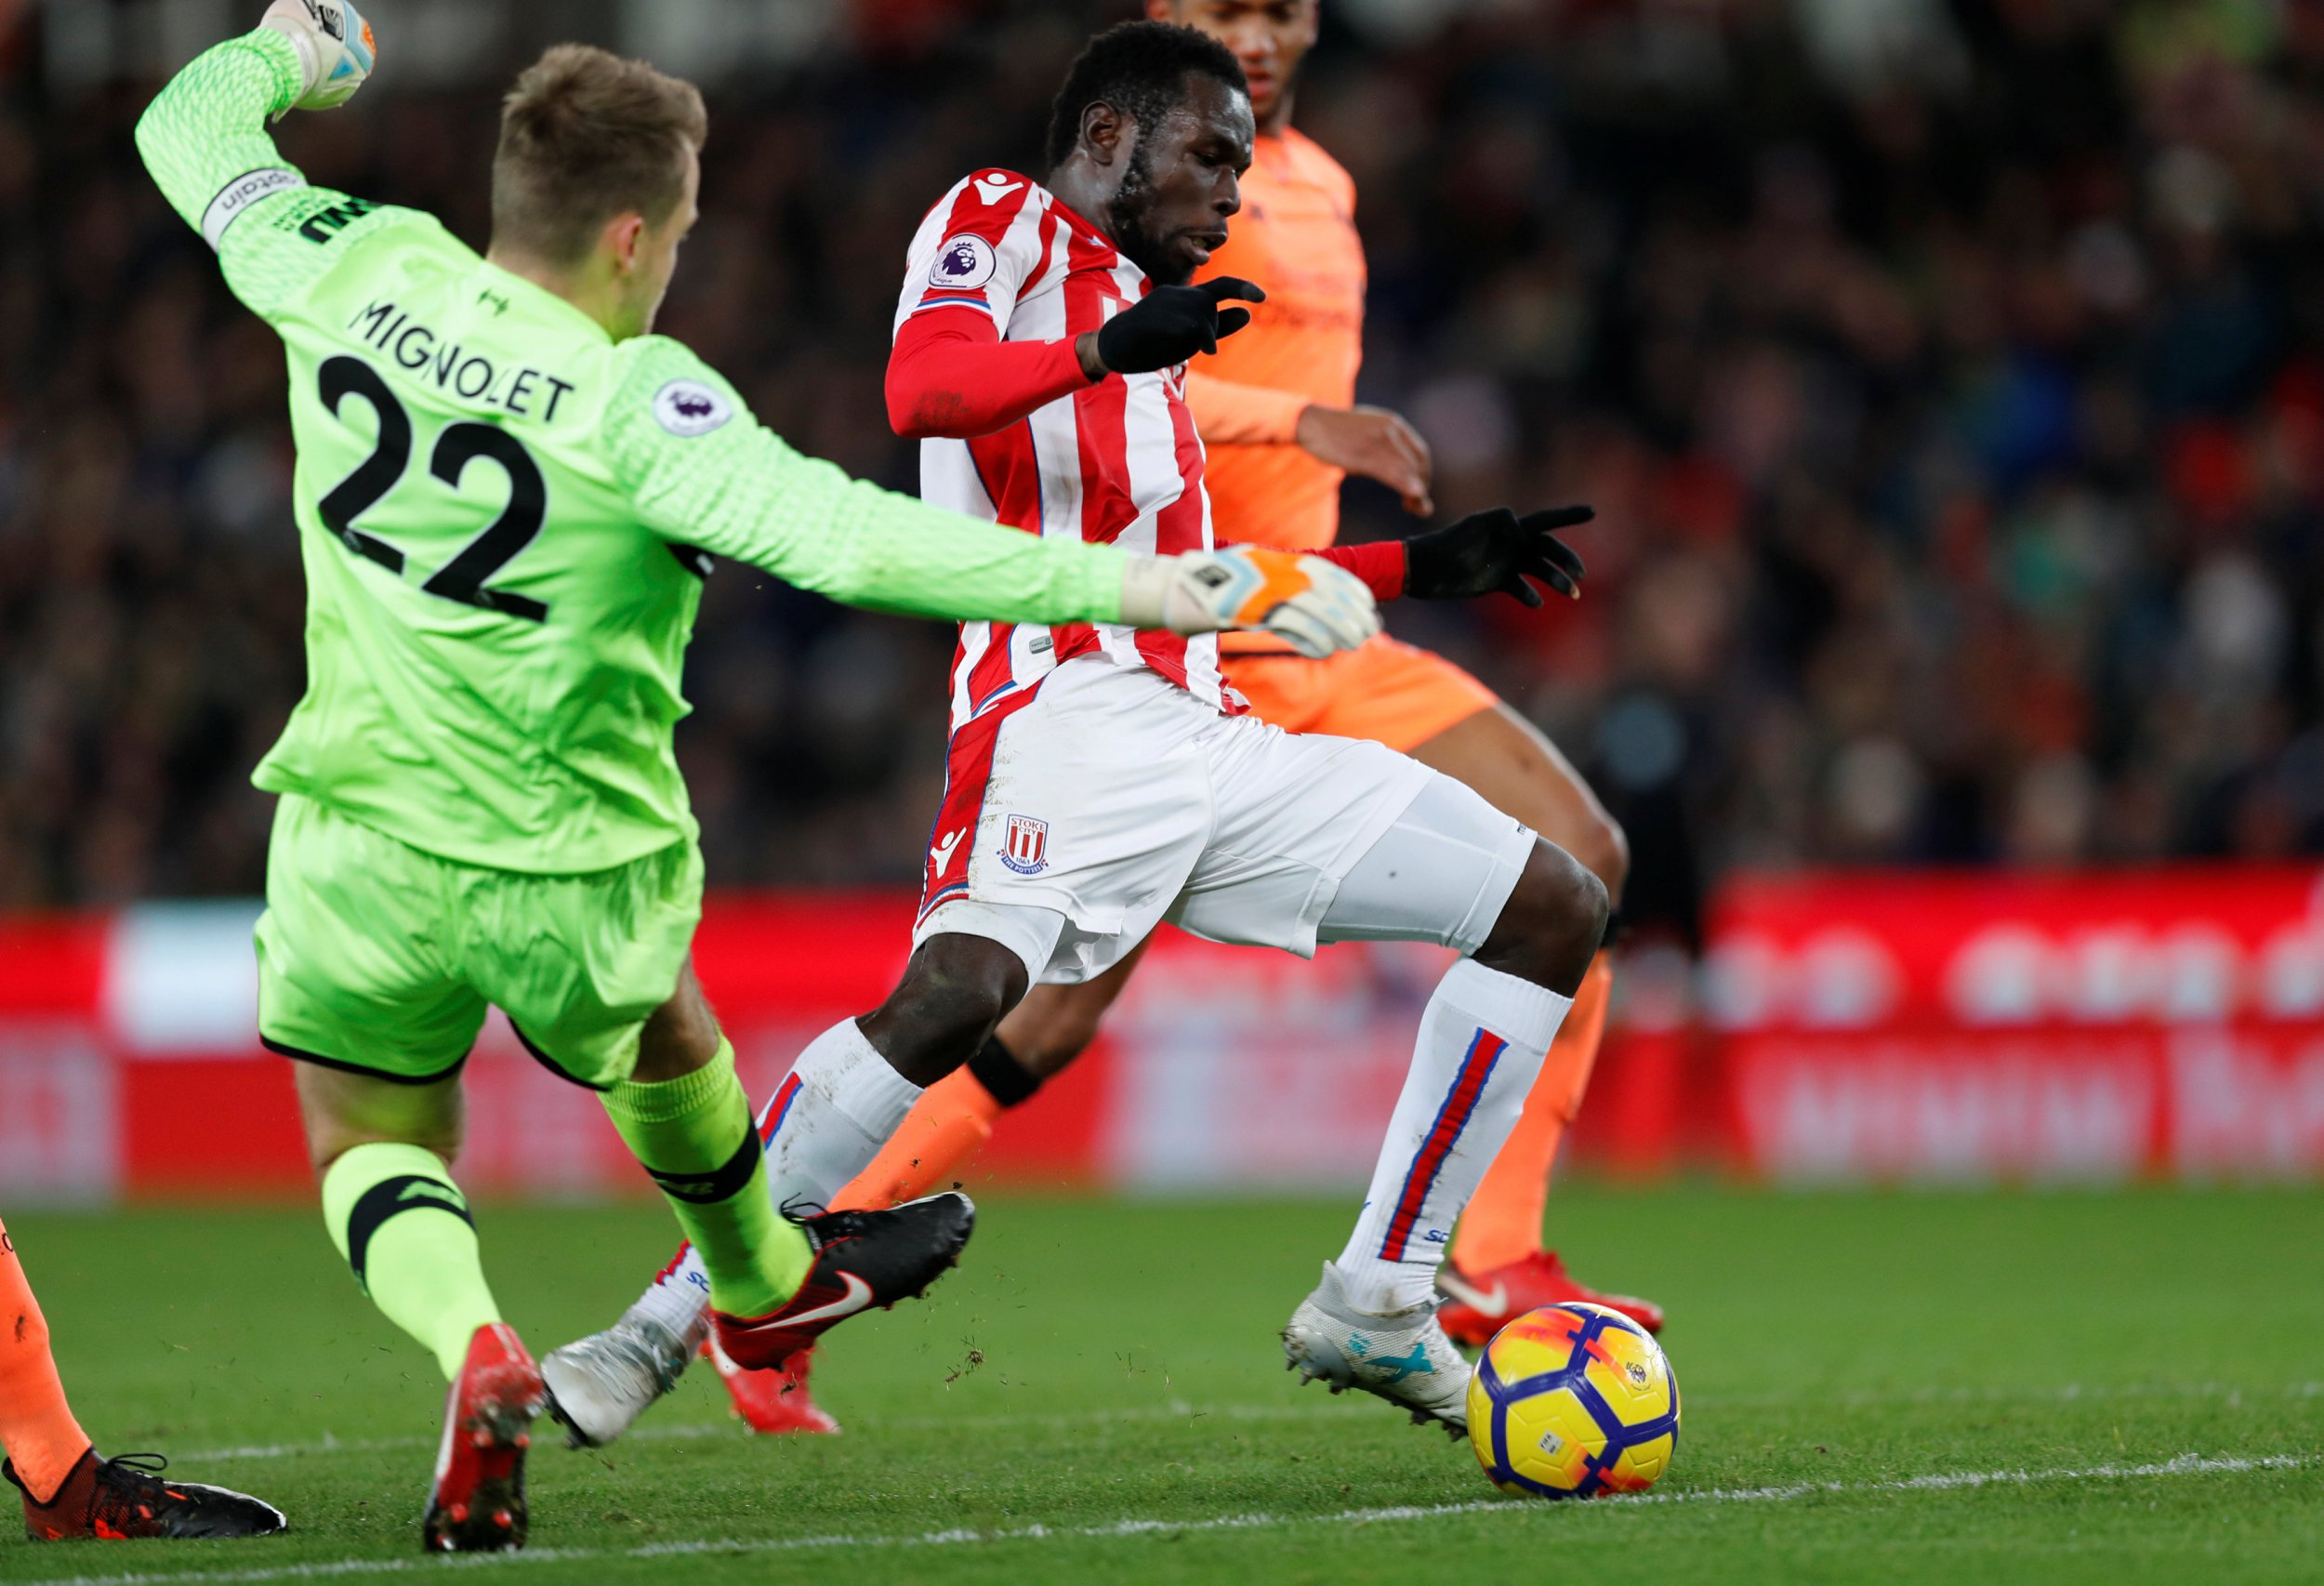 Liverpool star Simon Mignolet relieved he avoided red card against Stoke after 'instinct' kicked in